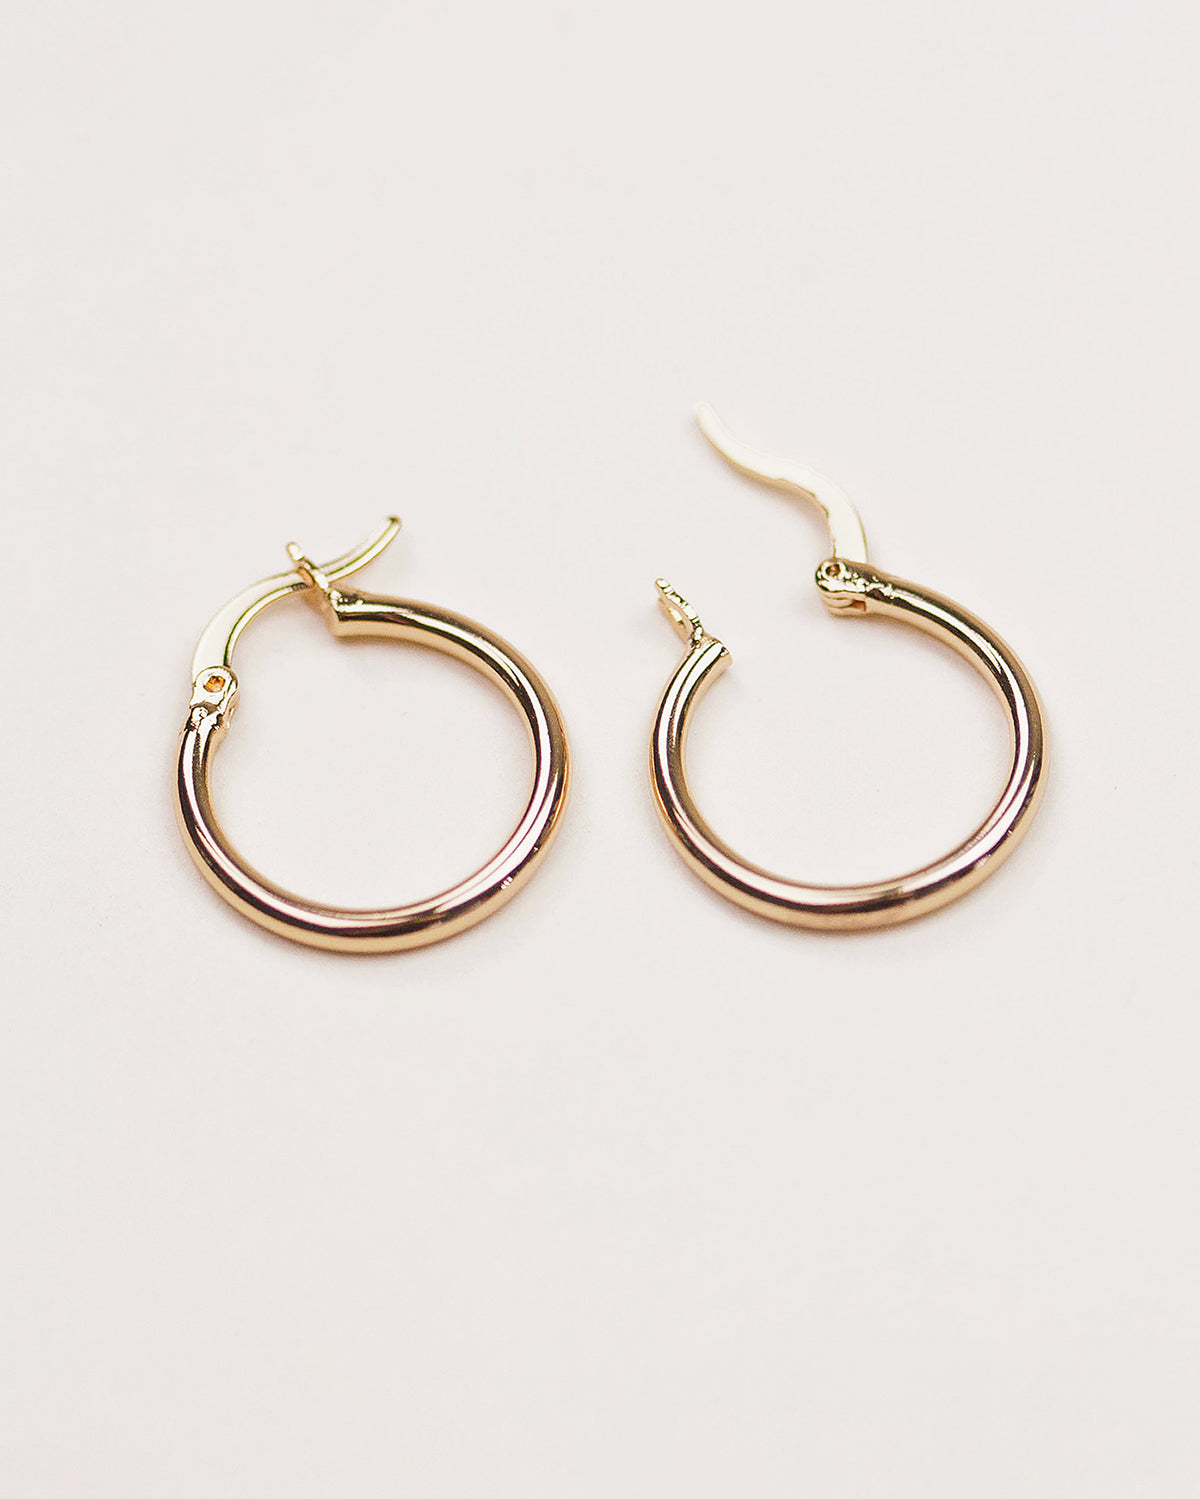 Hilda Simple Hoop Earrings - Midi